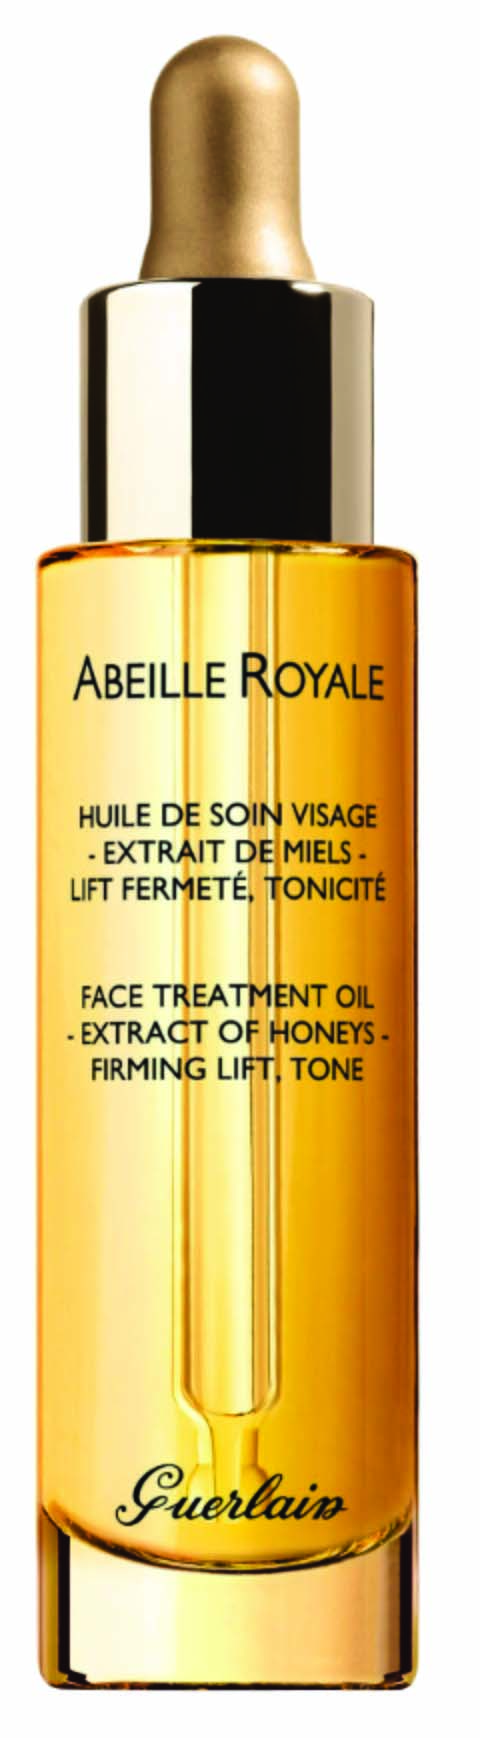 Guerlain Abeille Royale Face Treatment Oil 28ml $185